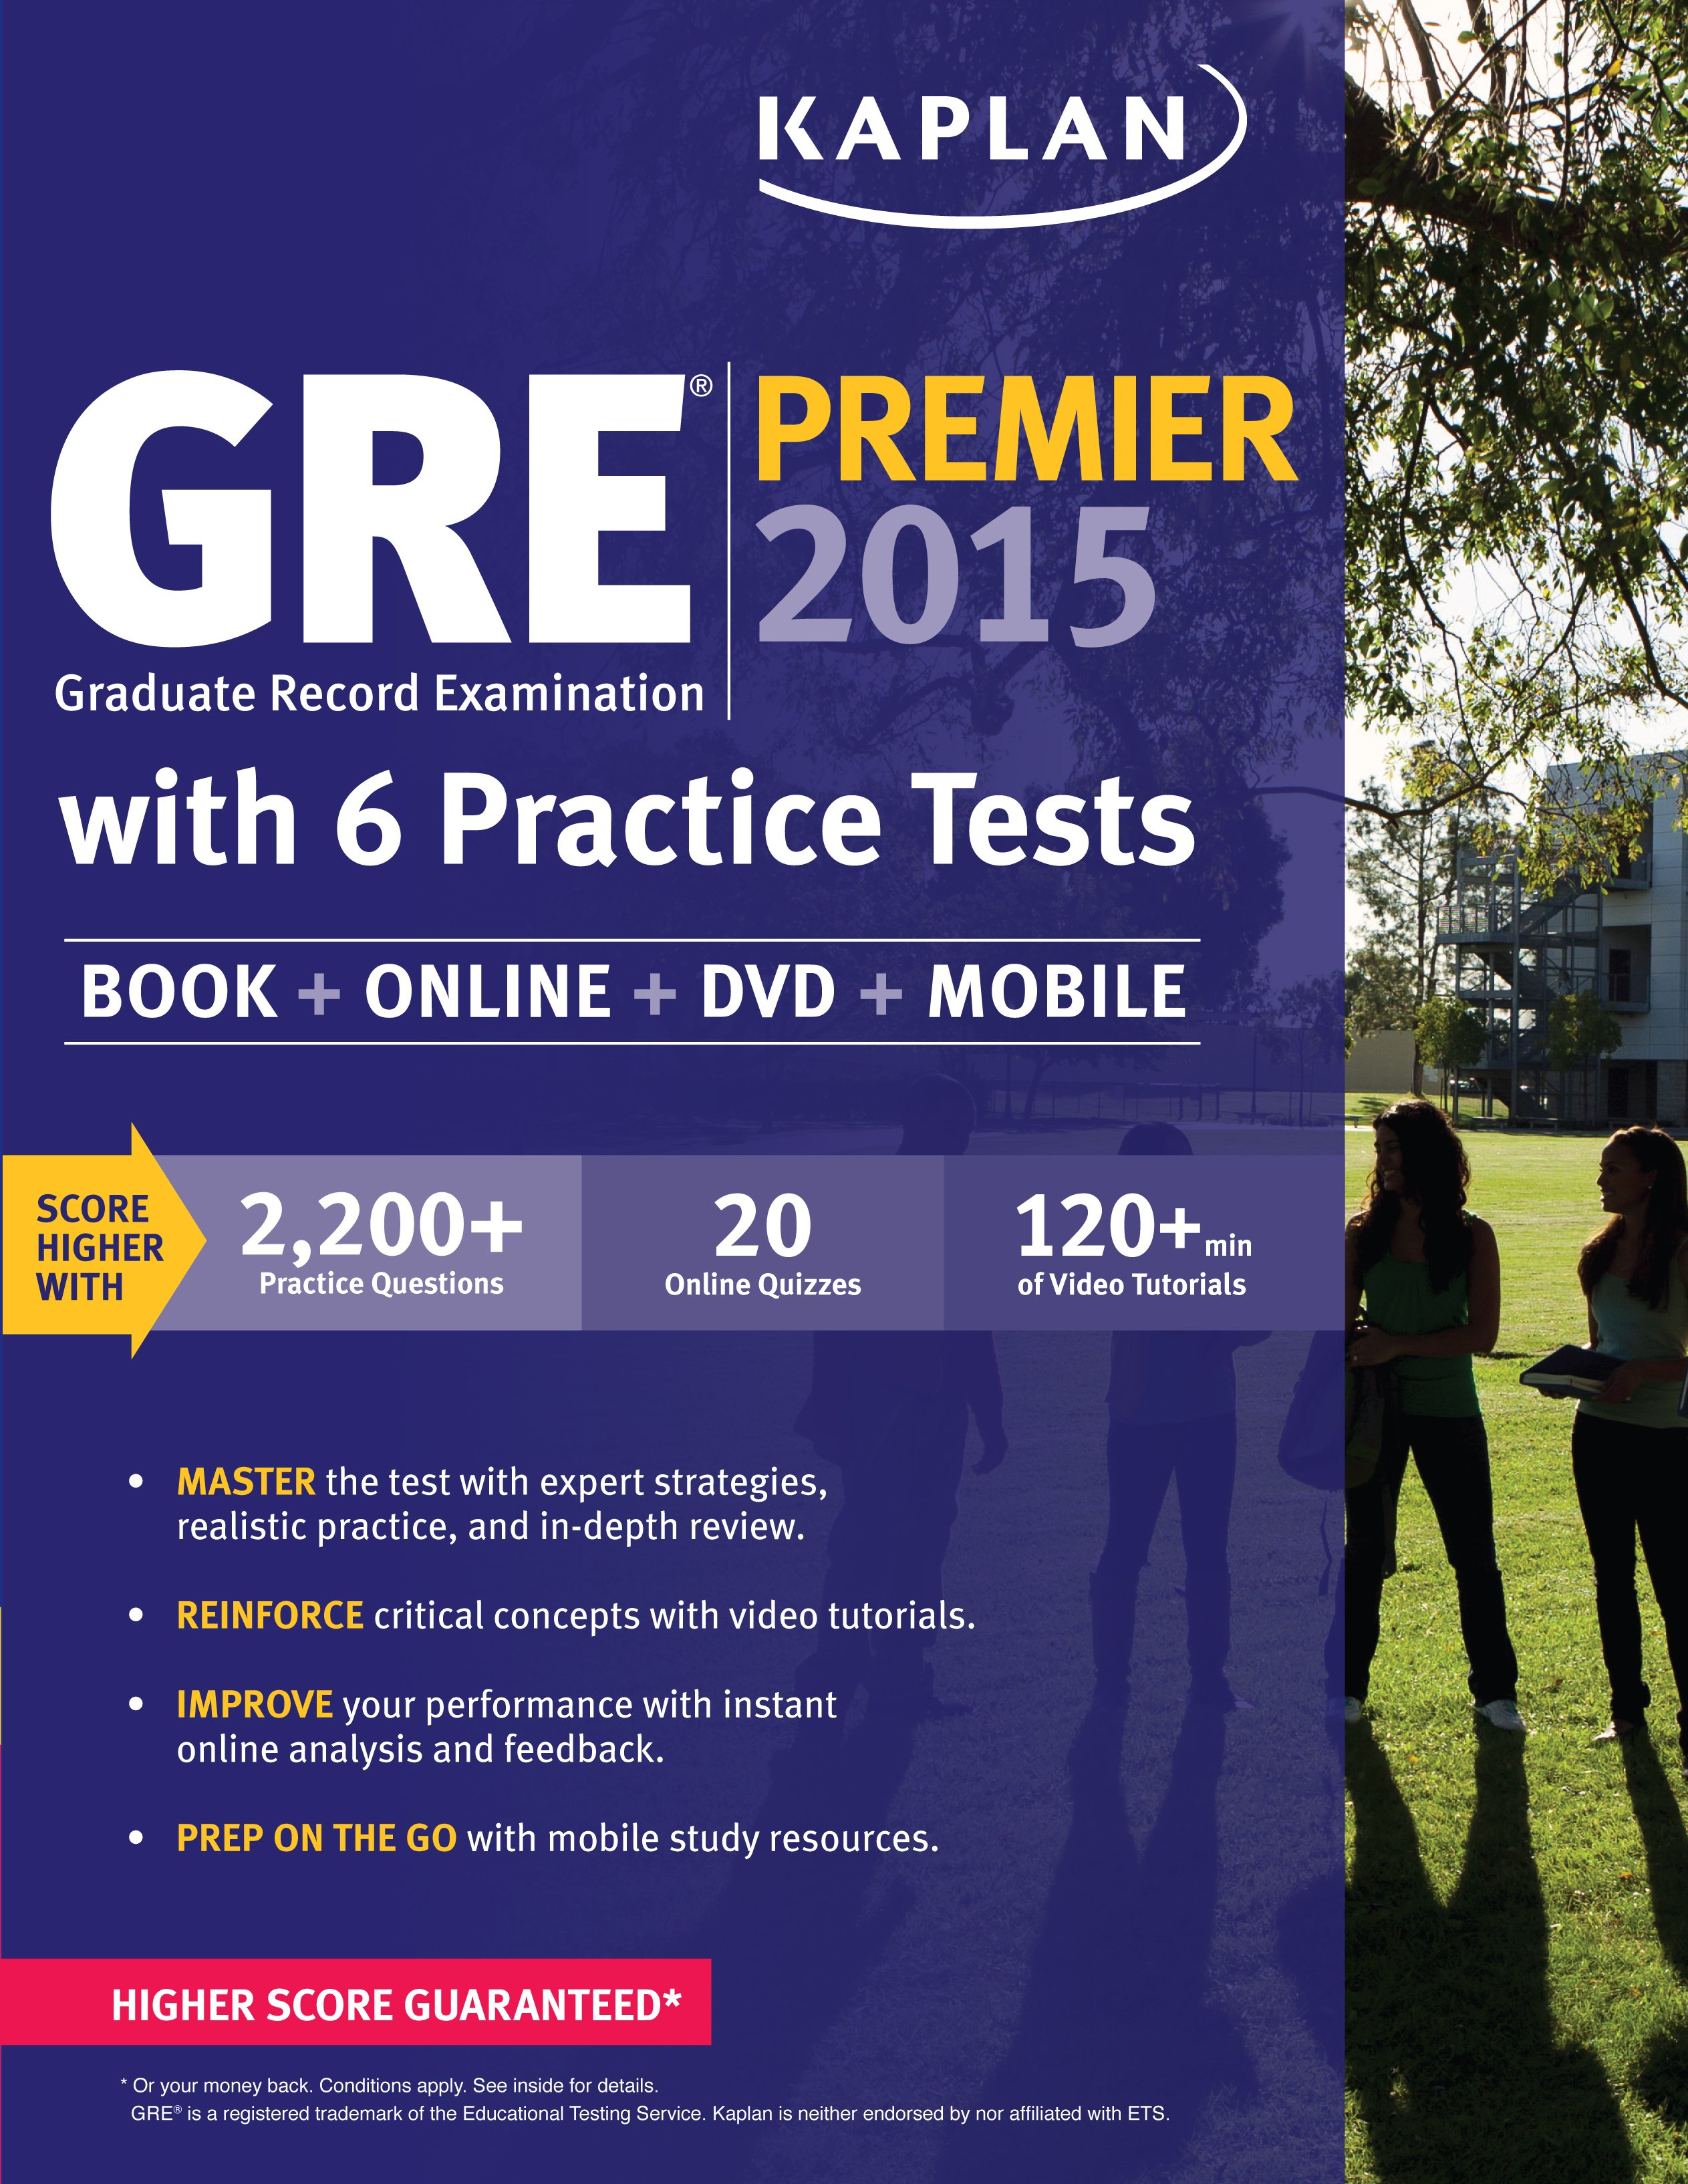 Kaplan gre prep review